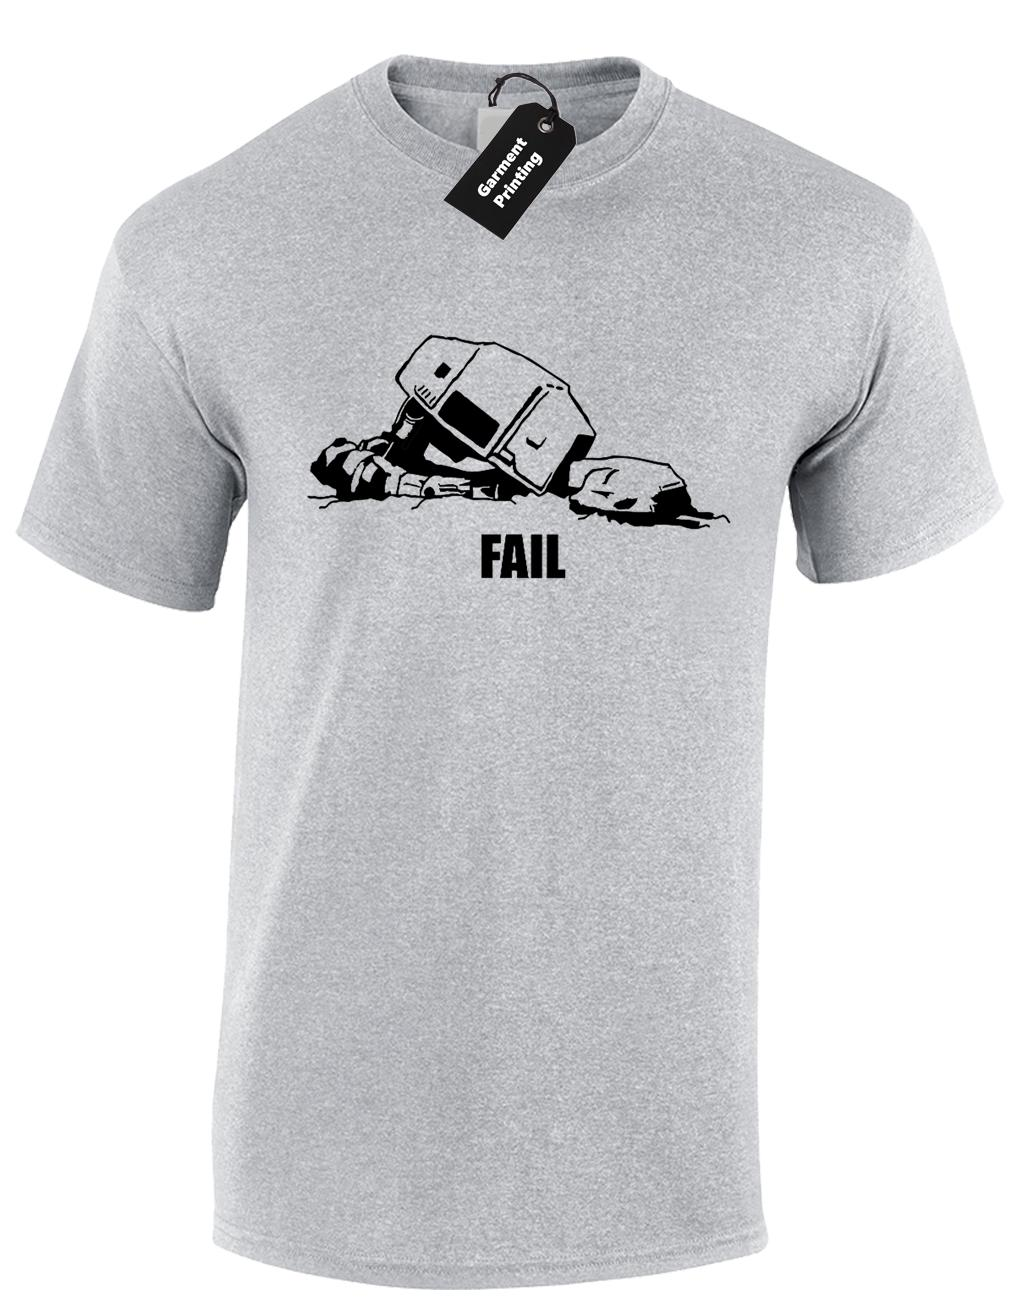 AT-AT FAIL MENS T SHIRT STAR TROOPER STORM WARS DARTH YODA VADER 3XL 4XL 5XL NEW Short Sleeve Plus Size t-shirt